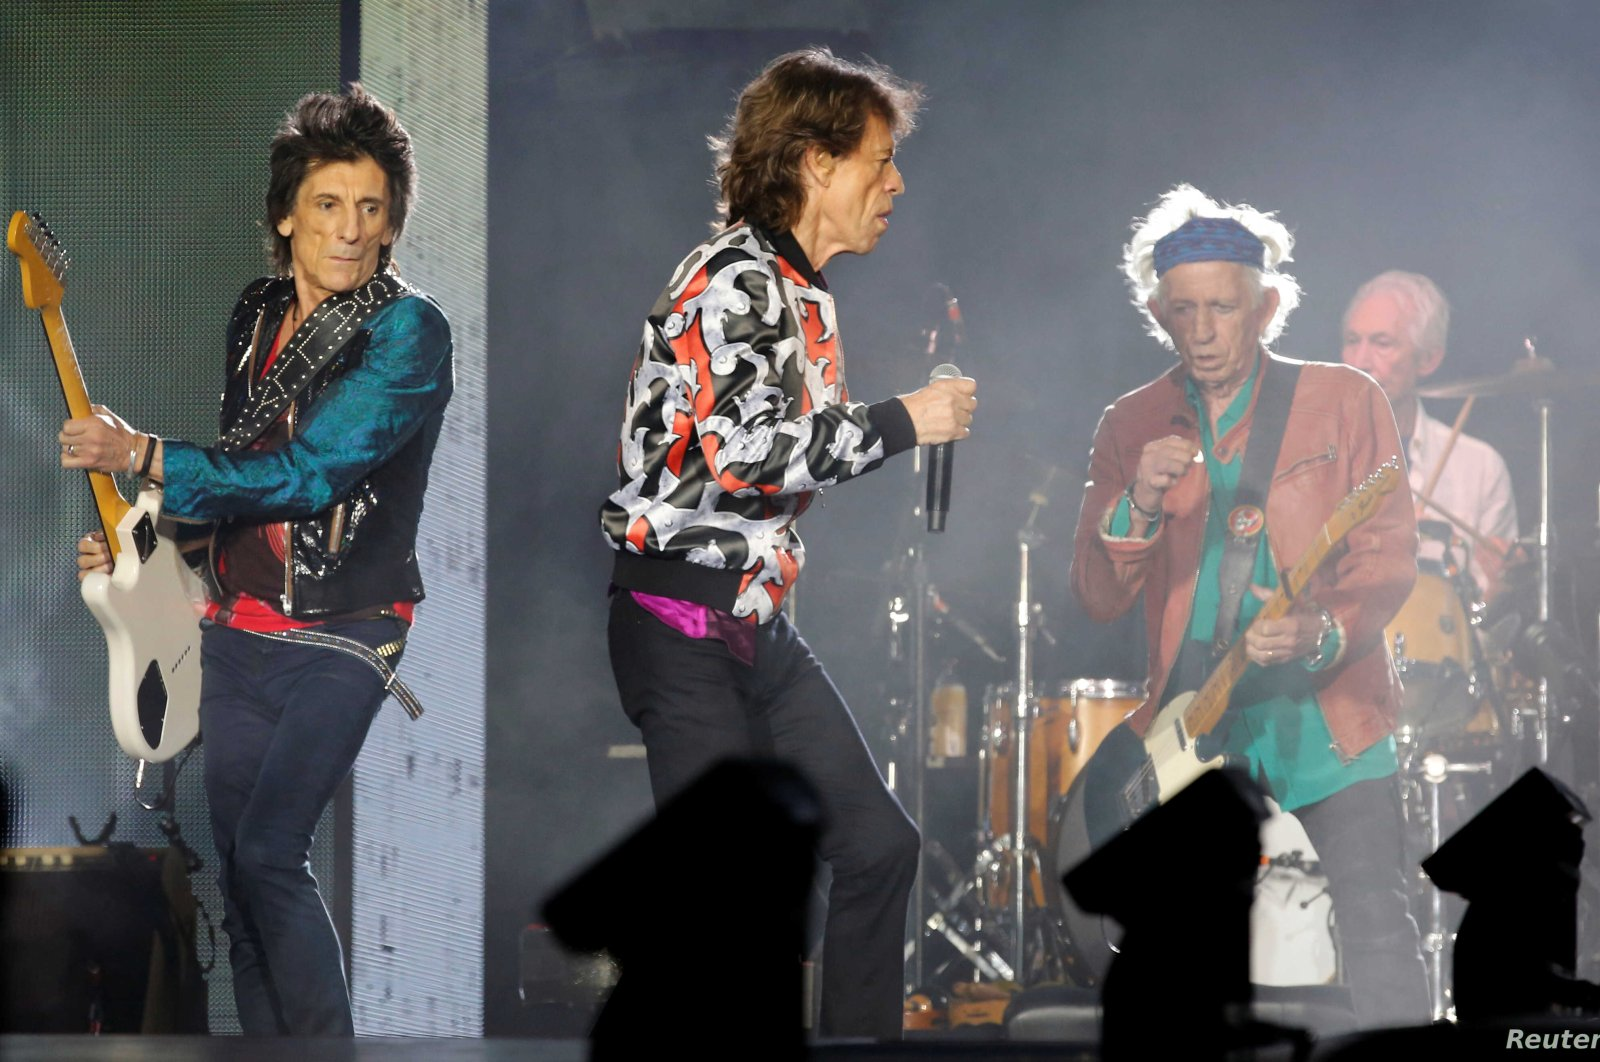 """Ron Wood (L), Mick Jagger (C), Keith Richards (center right) and Charlie Watts of the Rolling Stones perform during a concert of their """"No Filter"""" European tour at the Orange Velodrome stadium in Marseille, France, June 26, 2018. (Reuters File Photo)"""